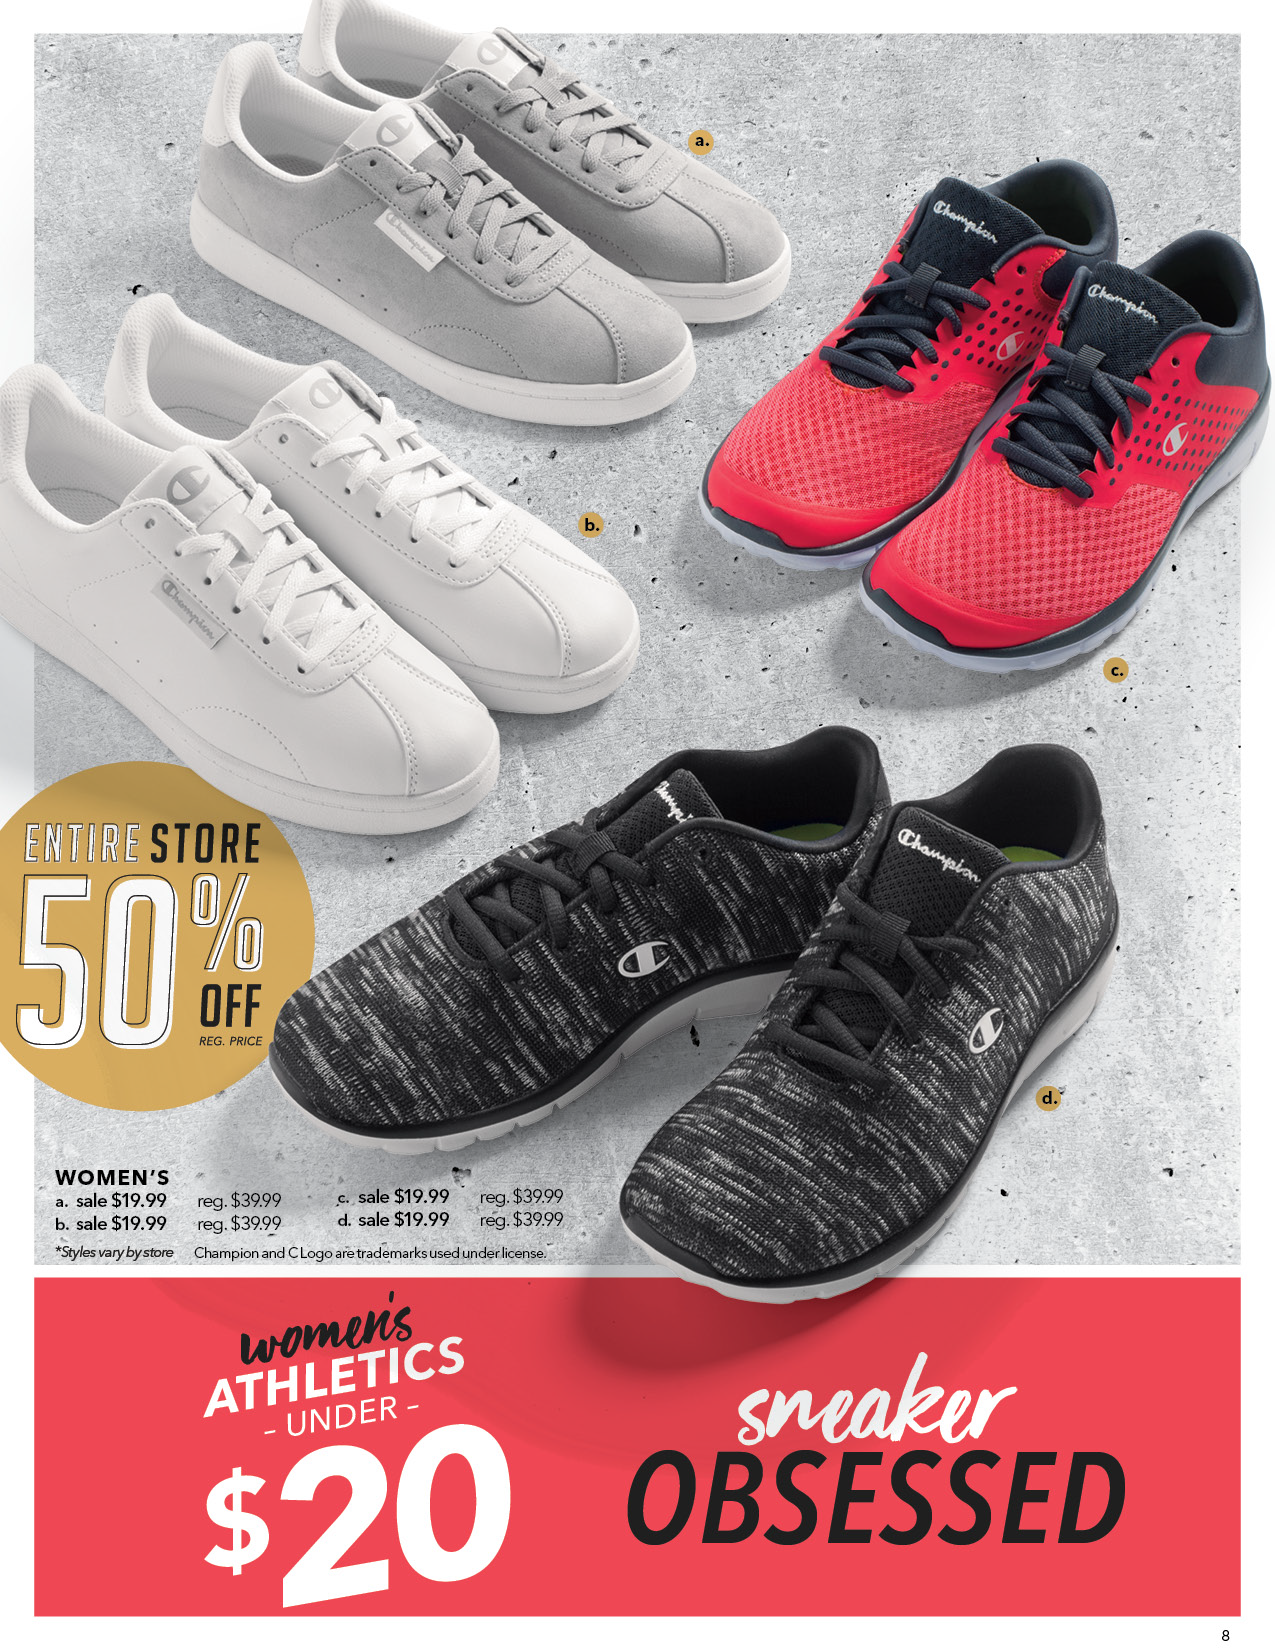 e79d5b6c29b Payless Black Friday 2017 Ads and Deals Shop the Payless Black Friday sale  2017 for the cheapest shoe sales and doorbuster discounts on boots